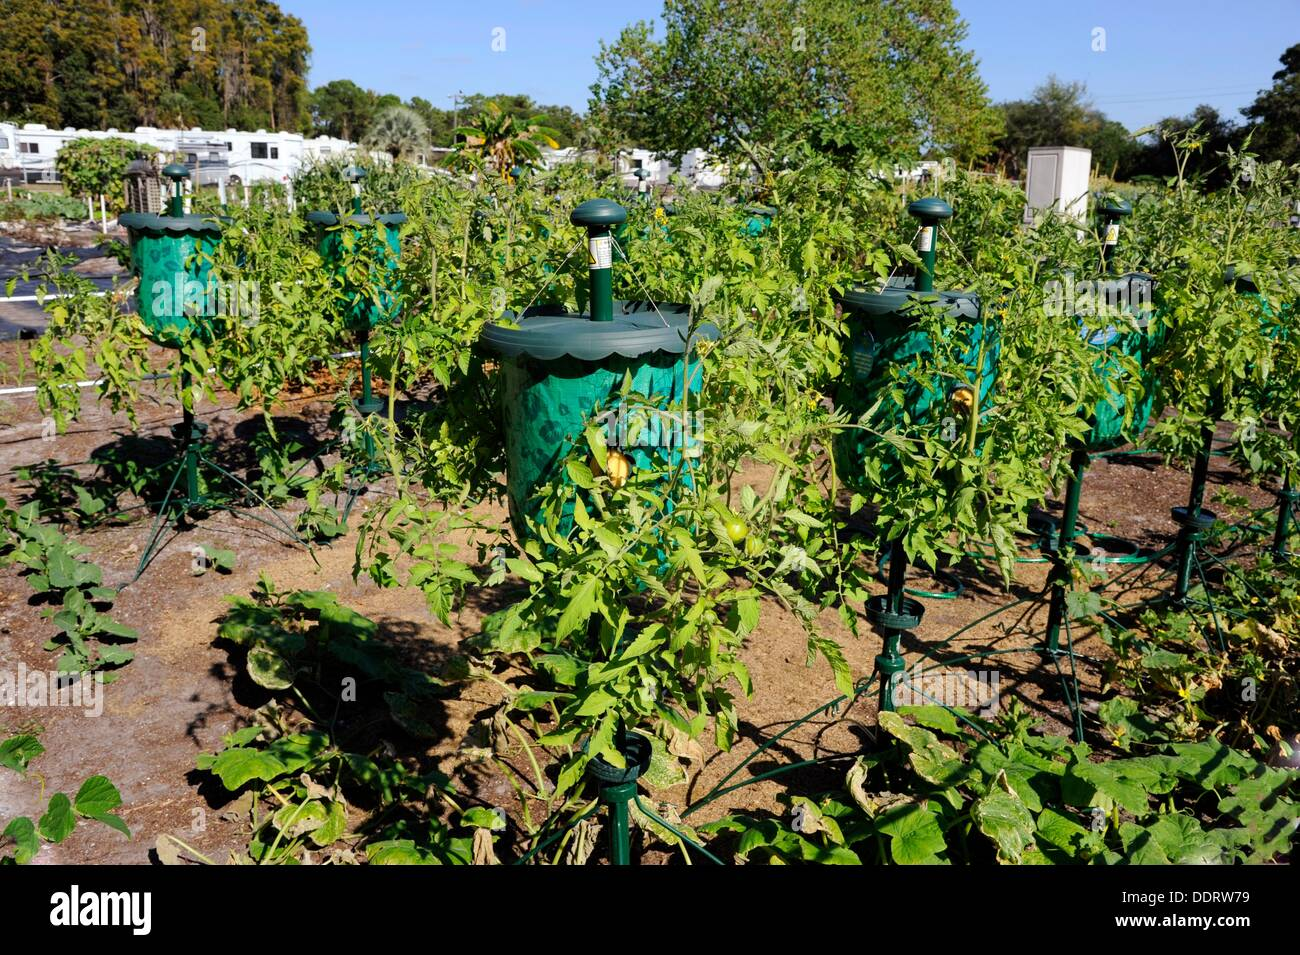 Tomato Grow Bag Container For Productive Small Home Garden Projects